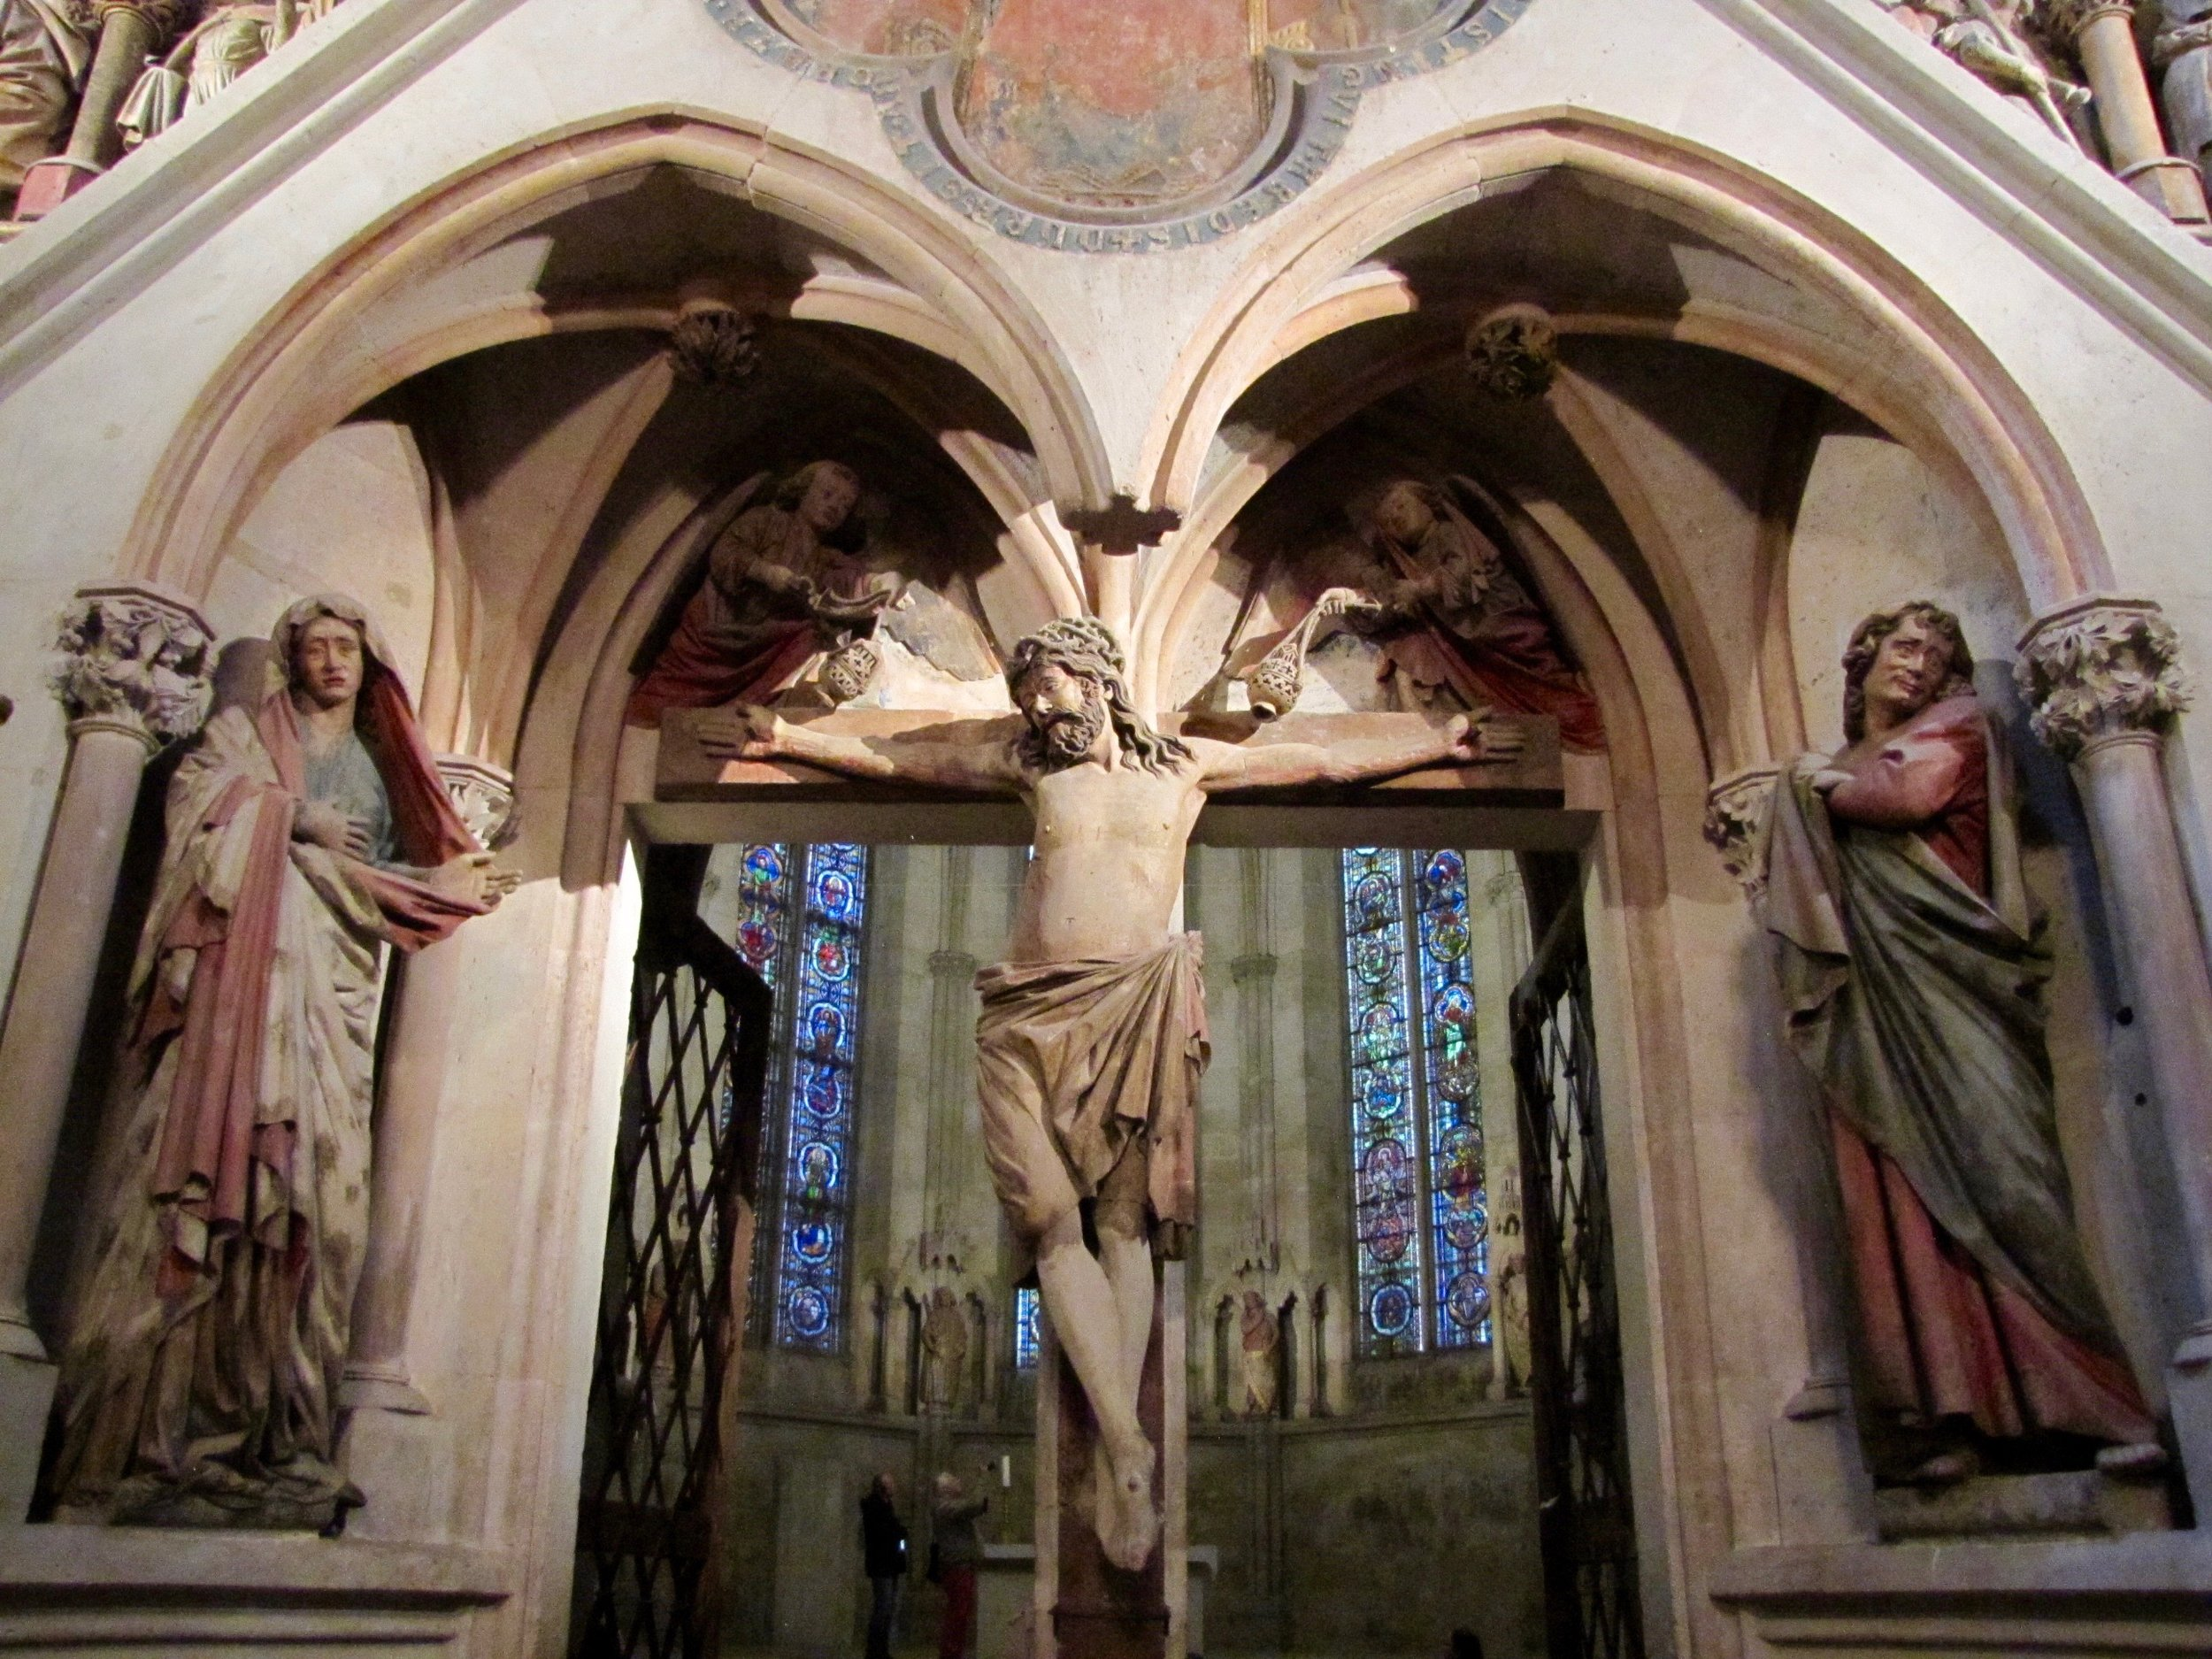 13th century sculptures from the west rood screen of Naumburg Cathedral, Germany.